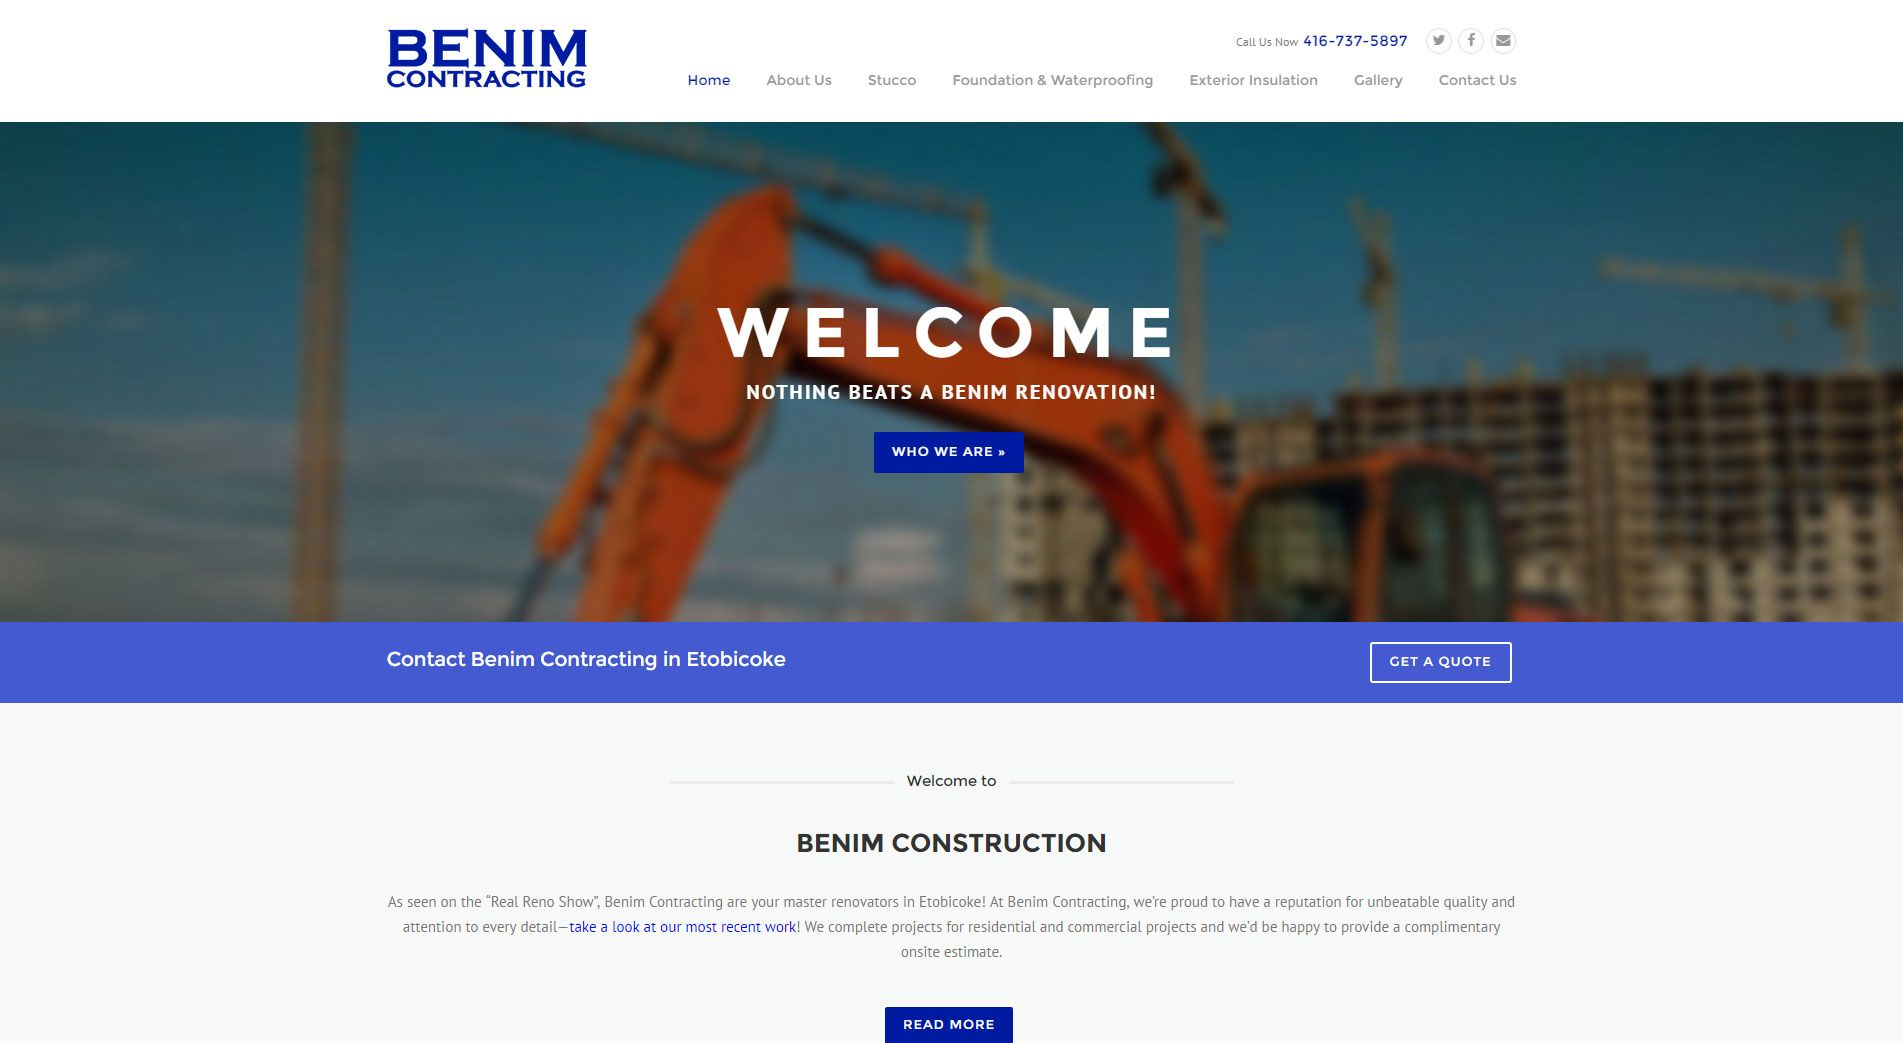 Benim Contracting Website